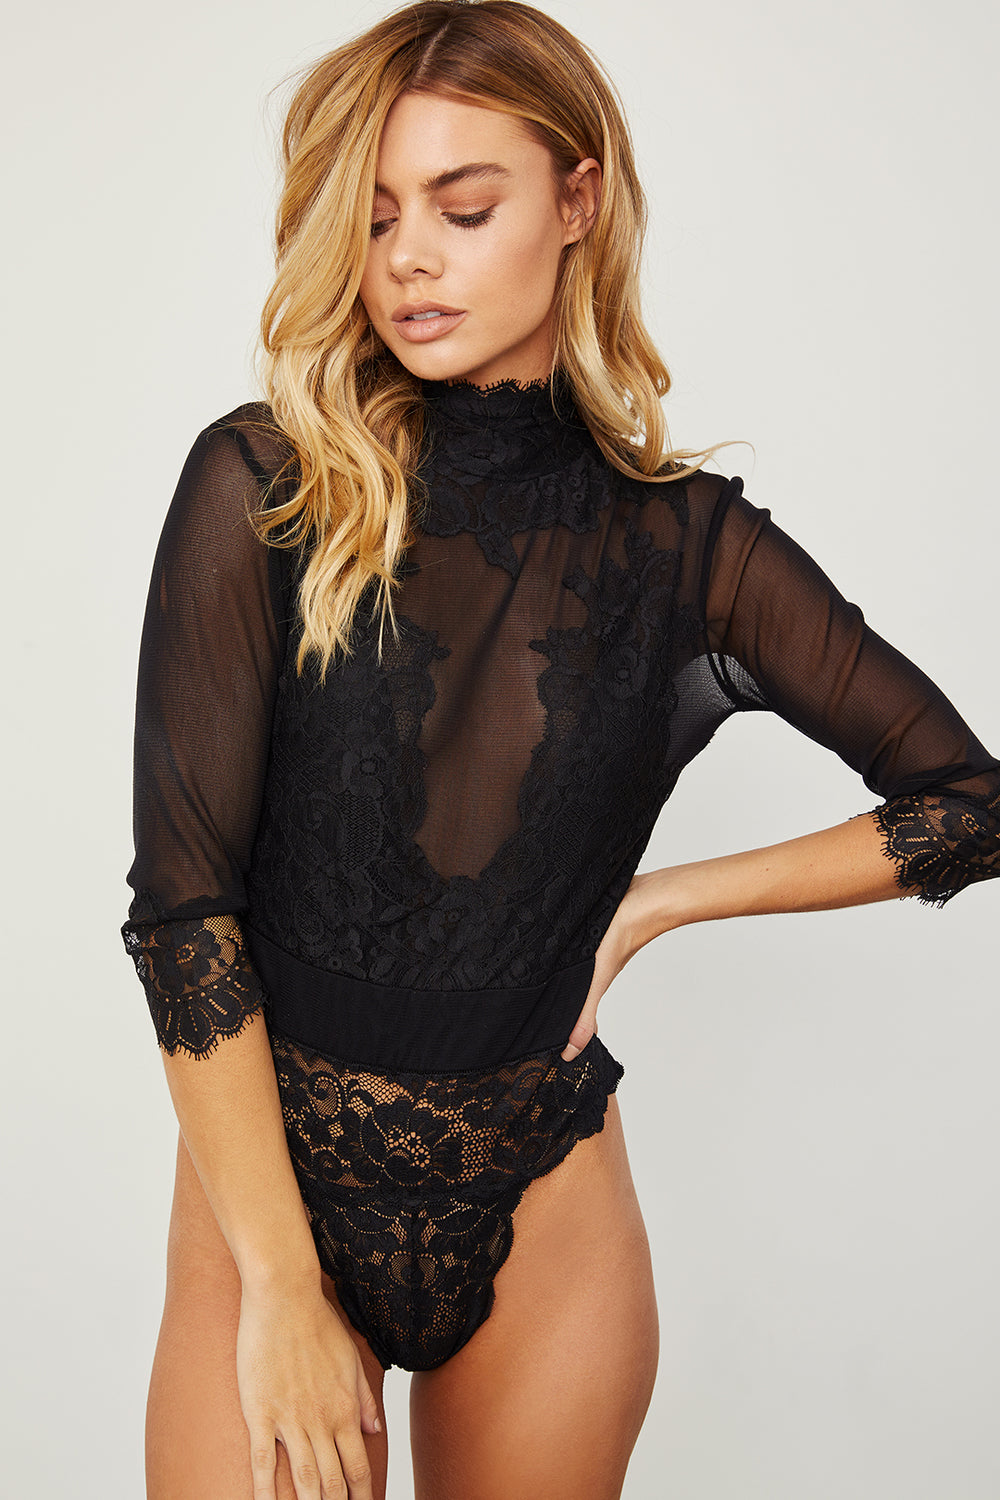 revolve black reversible vintage inspired mesh and lace high neck bodysuit| Model is wearing Size S